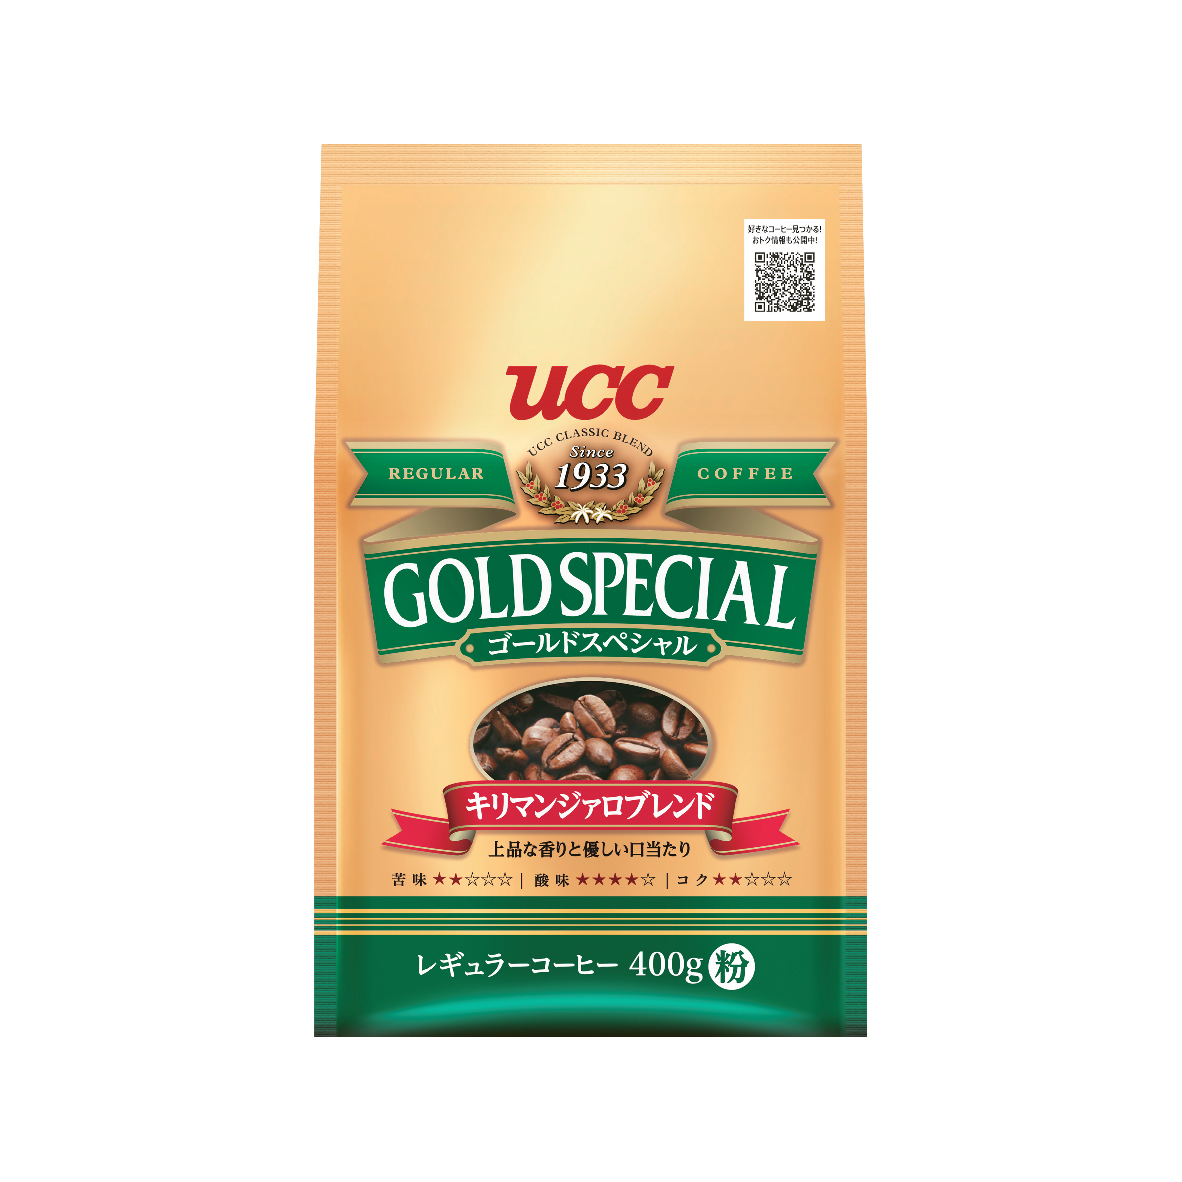 UCC Gold Special Kilimanjaro Blend Roasted Coffee